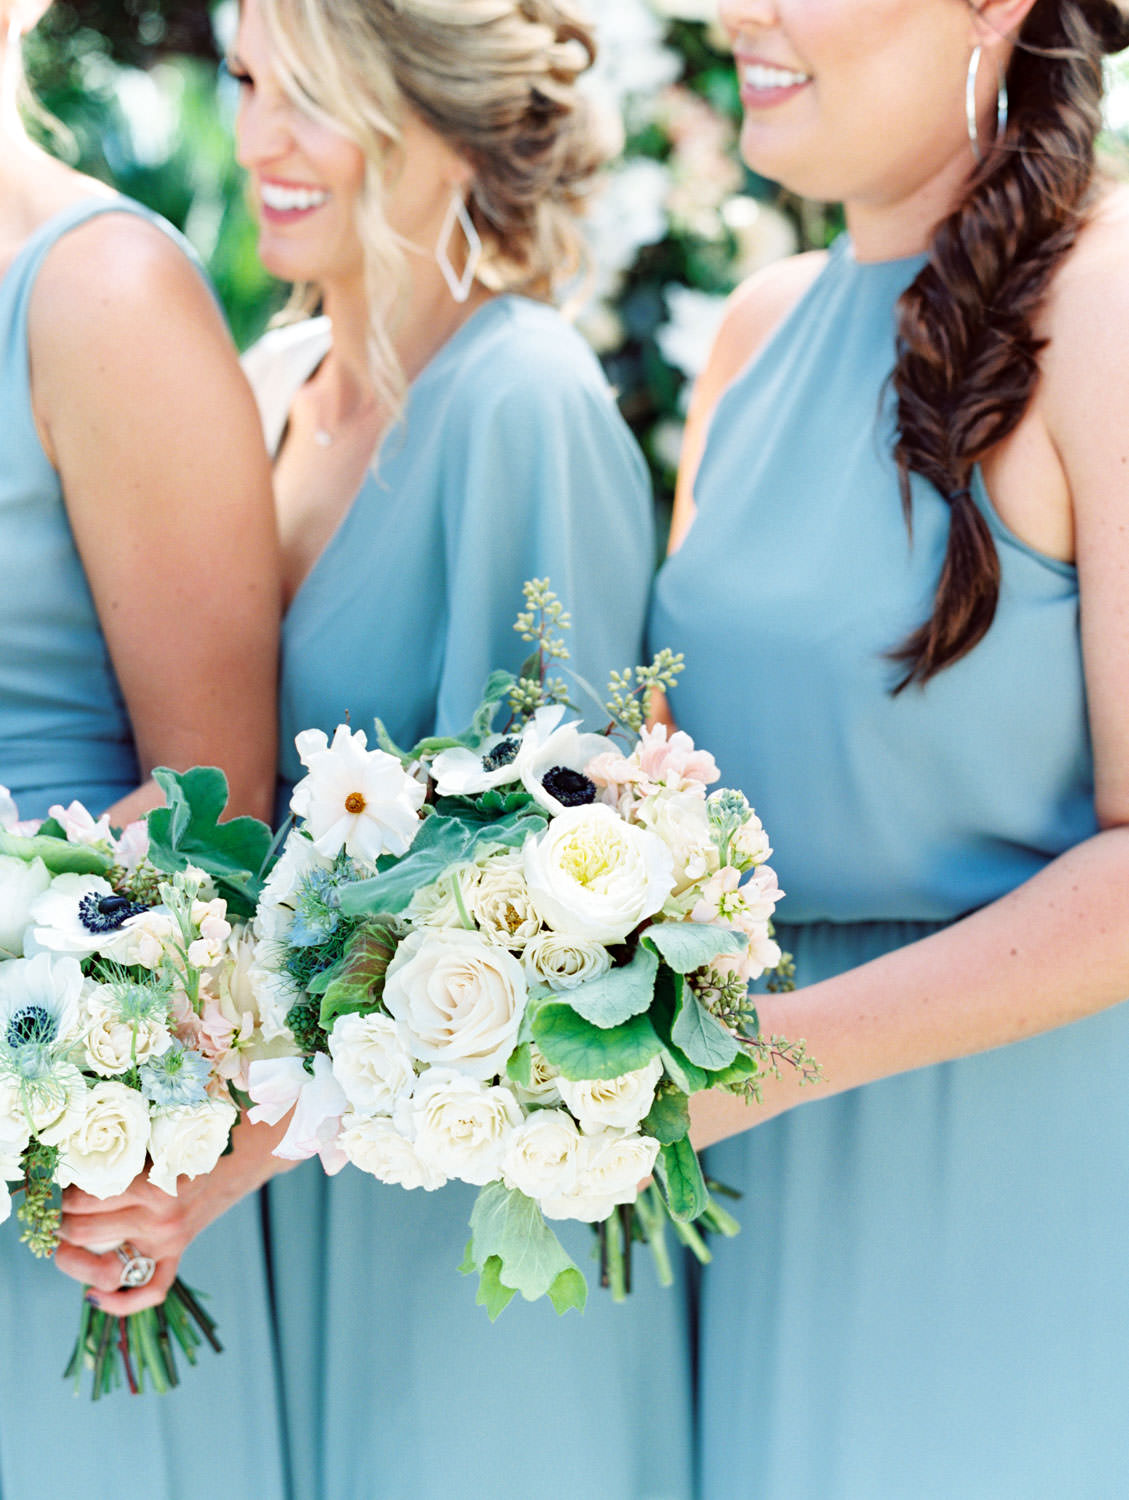 Bridesmaids in french blue dresses. Bouquets with anemones, greenery, ivory, and blush flowers in front of a large floral arch captured on film. Wedding at Humphreys Half Moon Inn by Cavin Elizabeth Photography